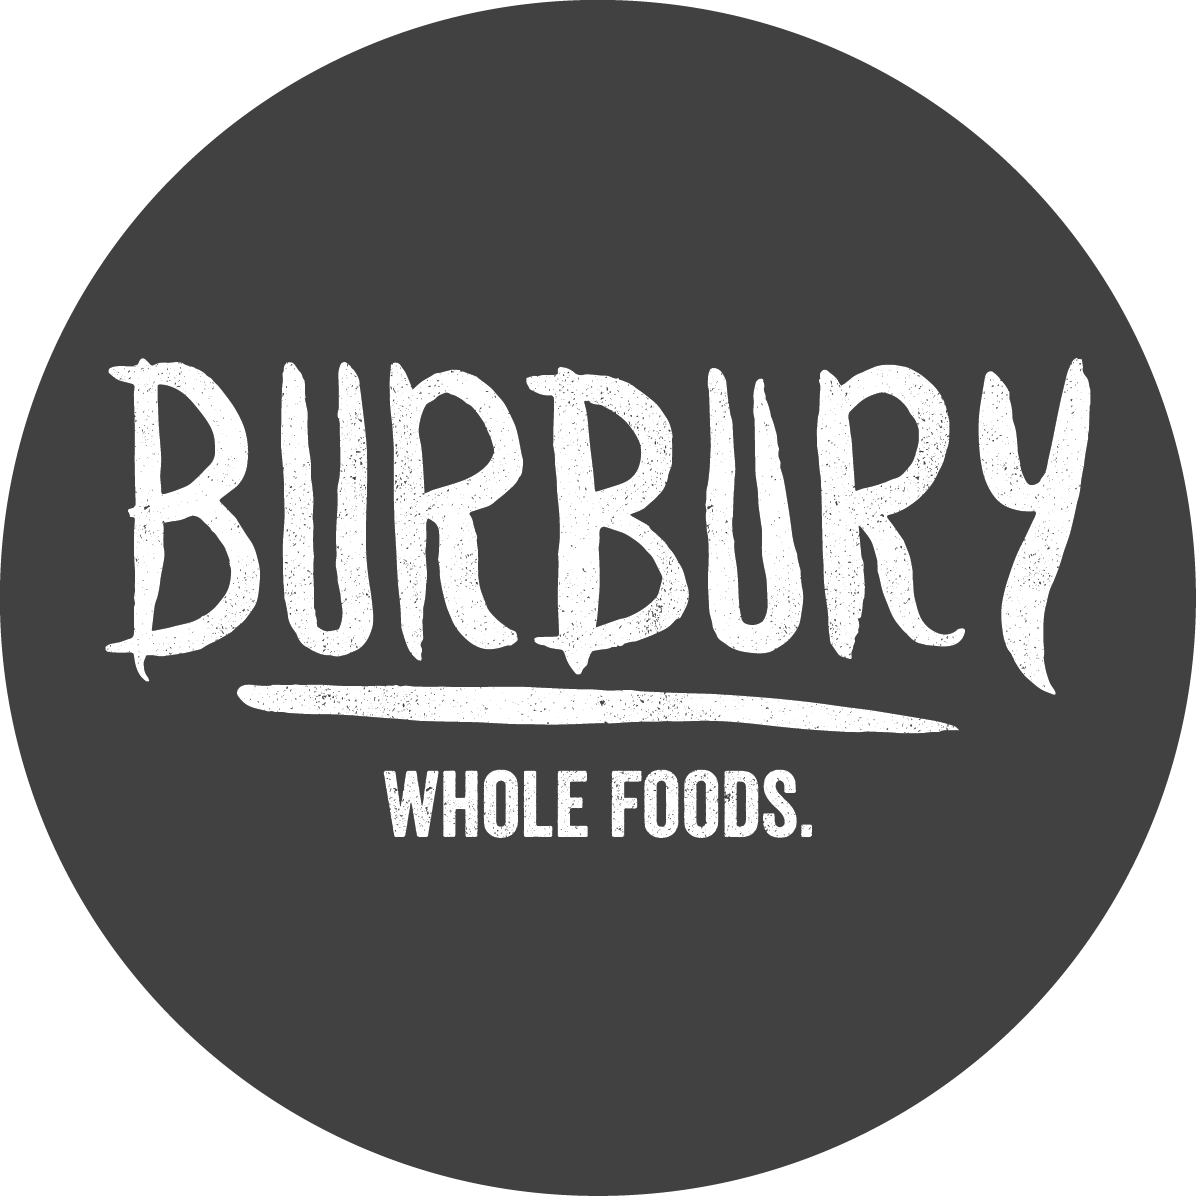 Burbury Whole Foods